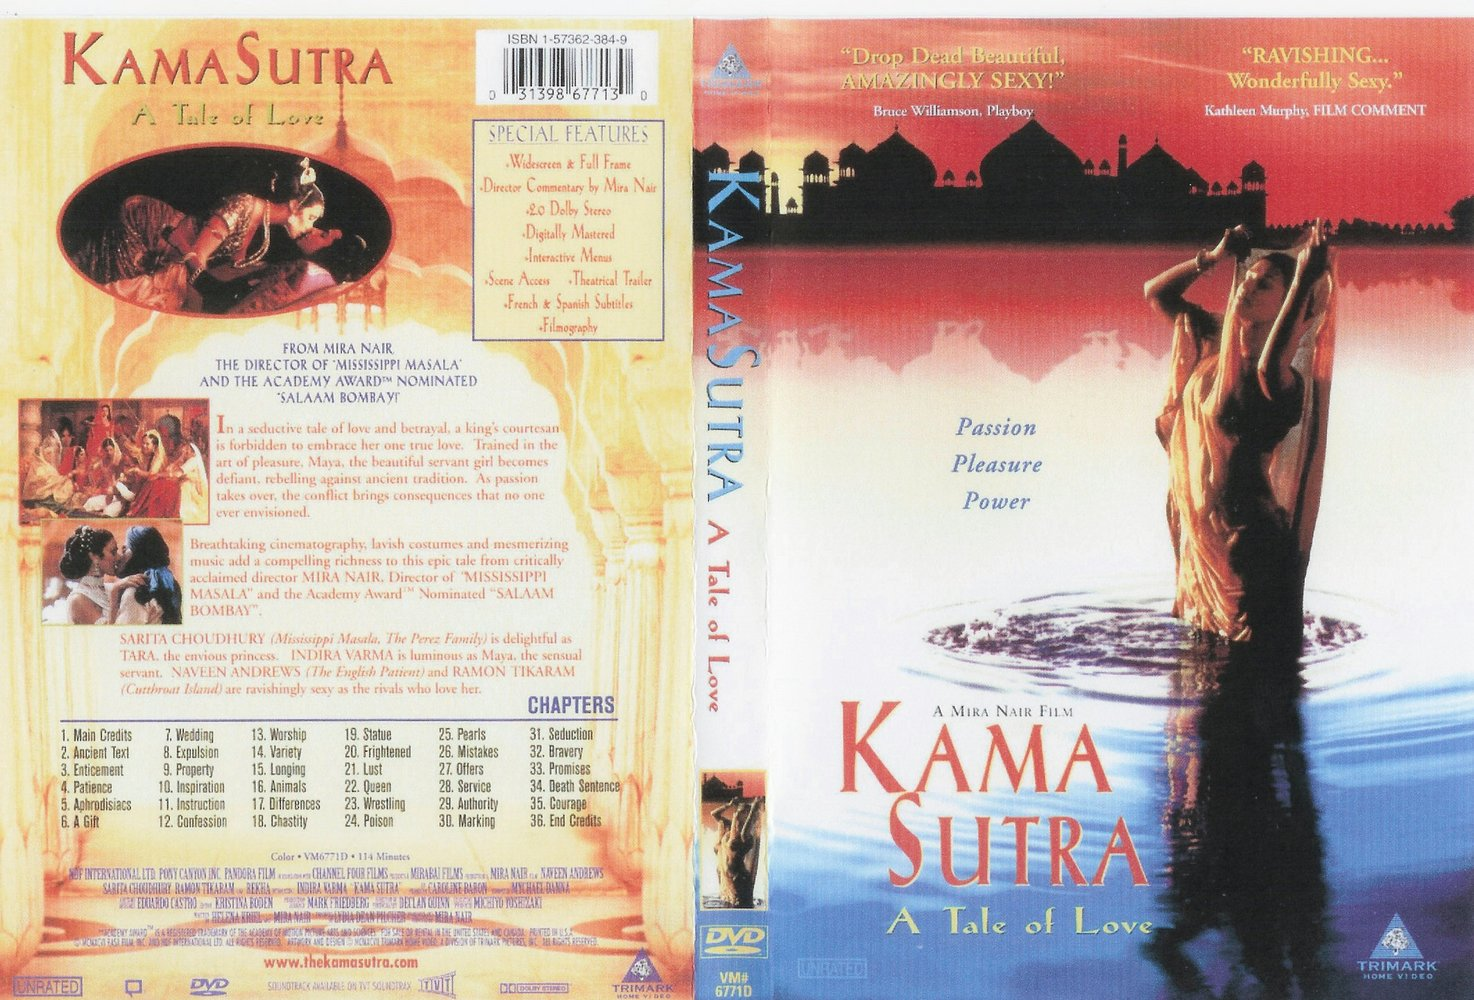 sg photos what is kamasutra